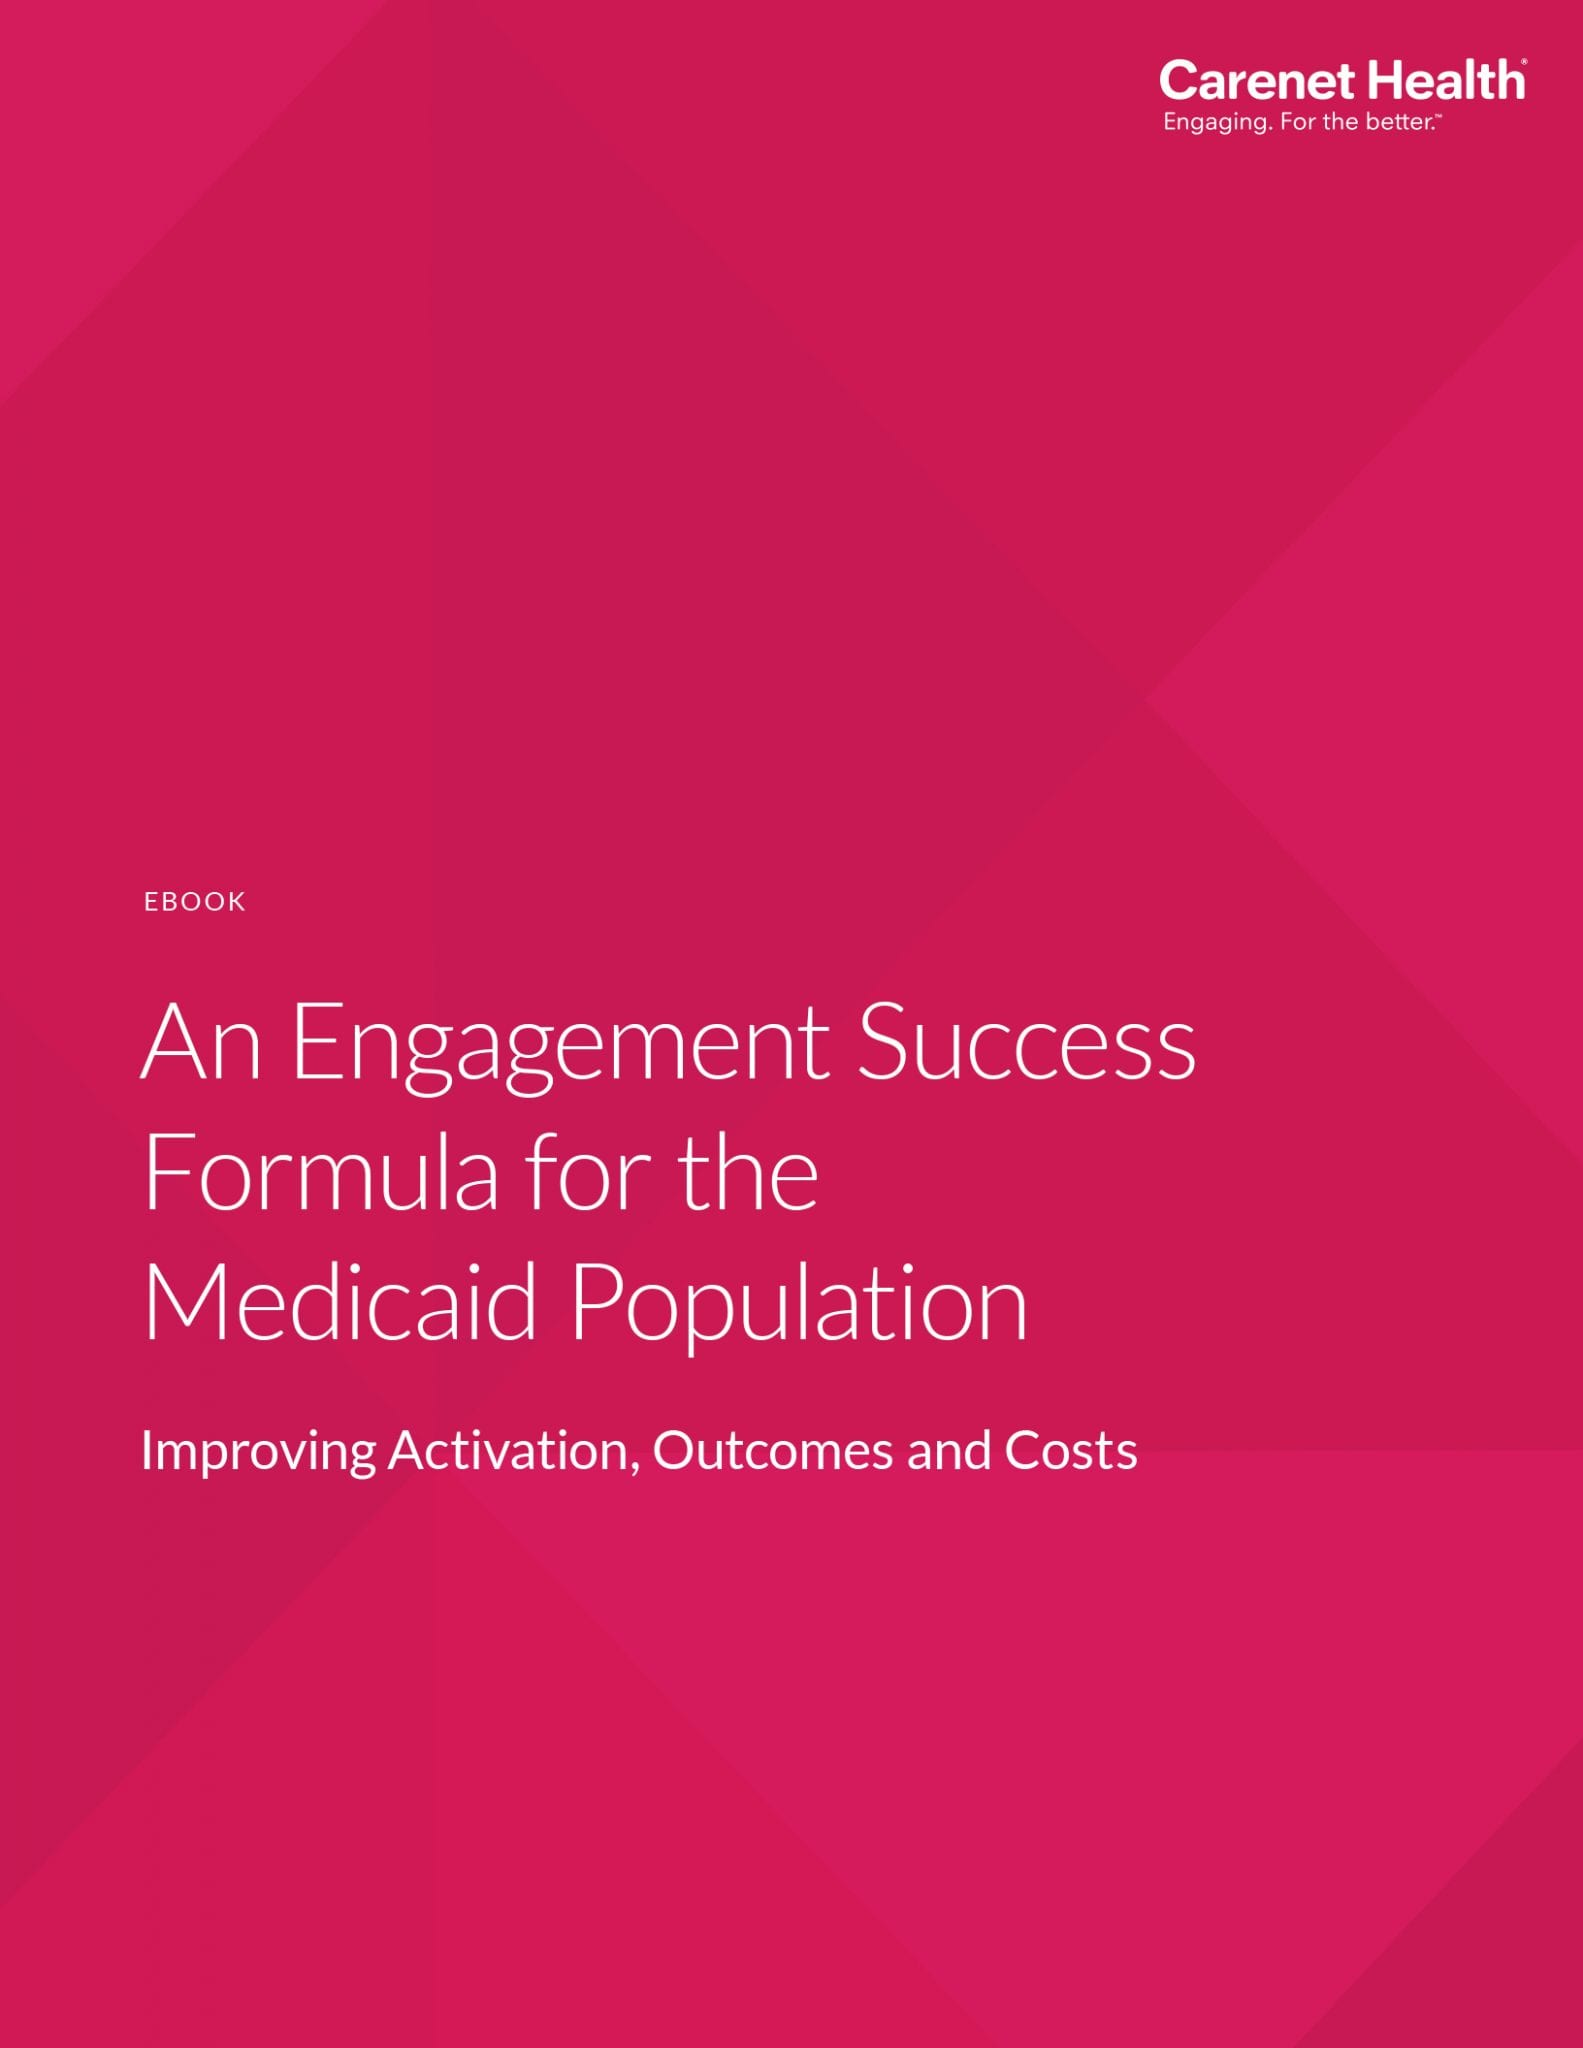 Ebook cover: An Engagement Success Formula for the Medicaid Population